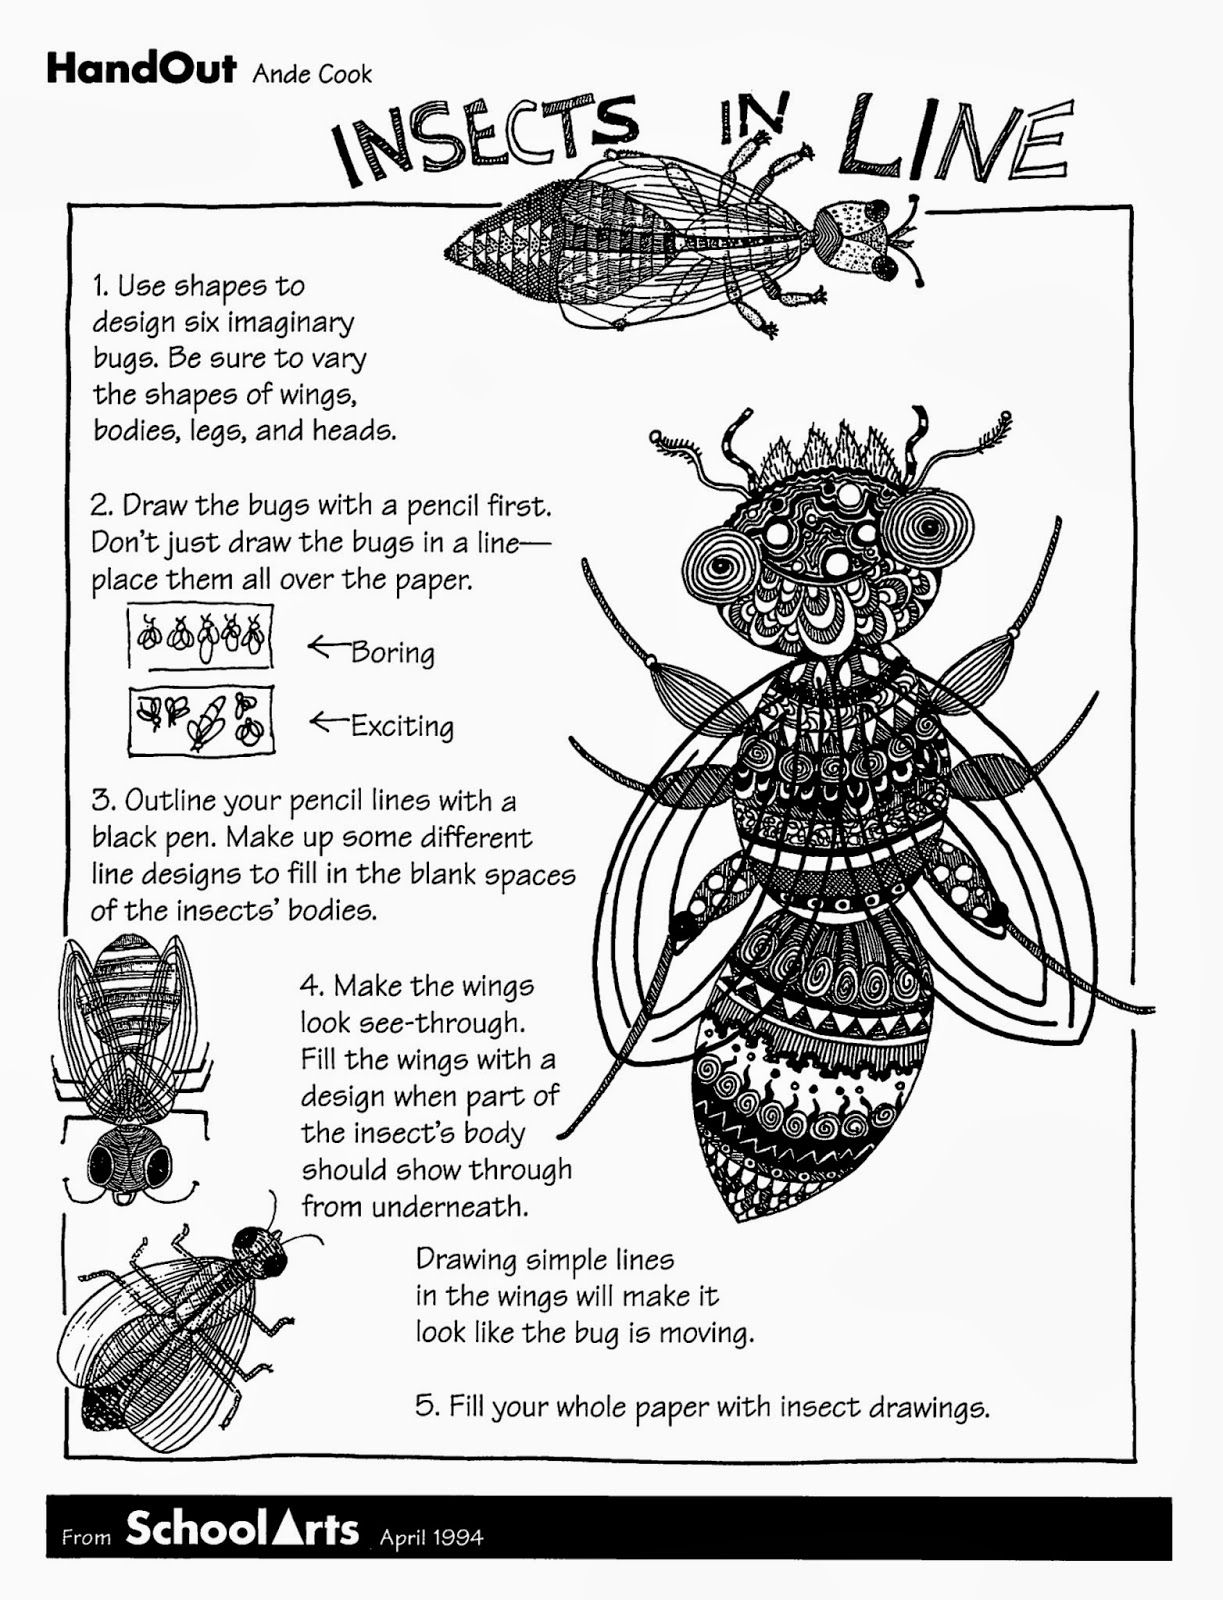 Free Ande Cook S Insects In Line Handout With Complete